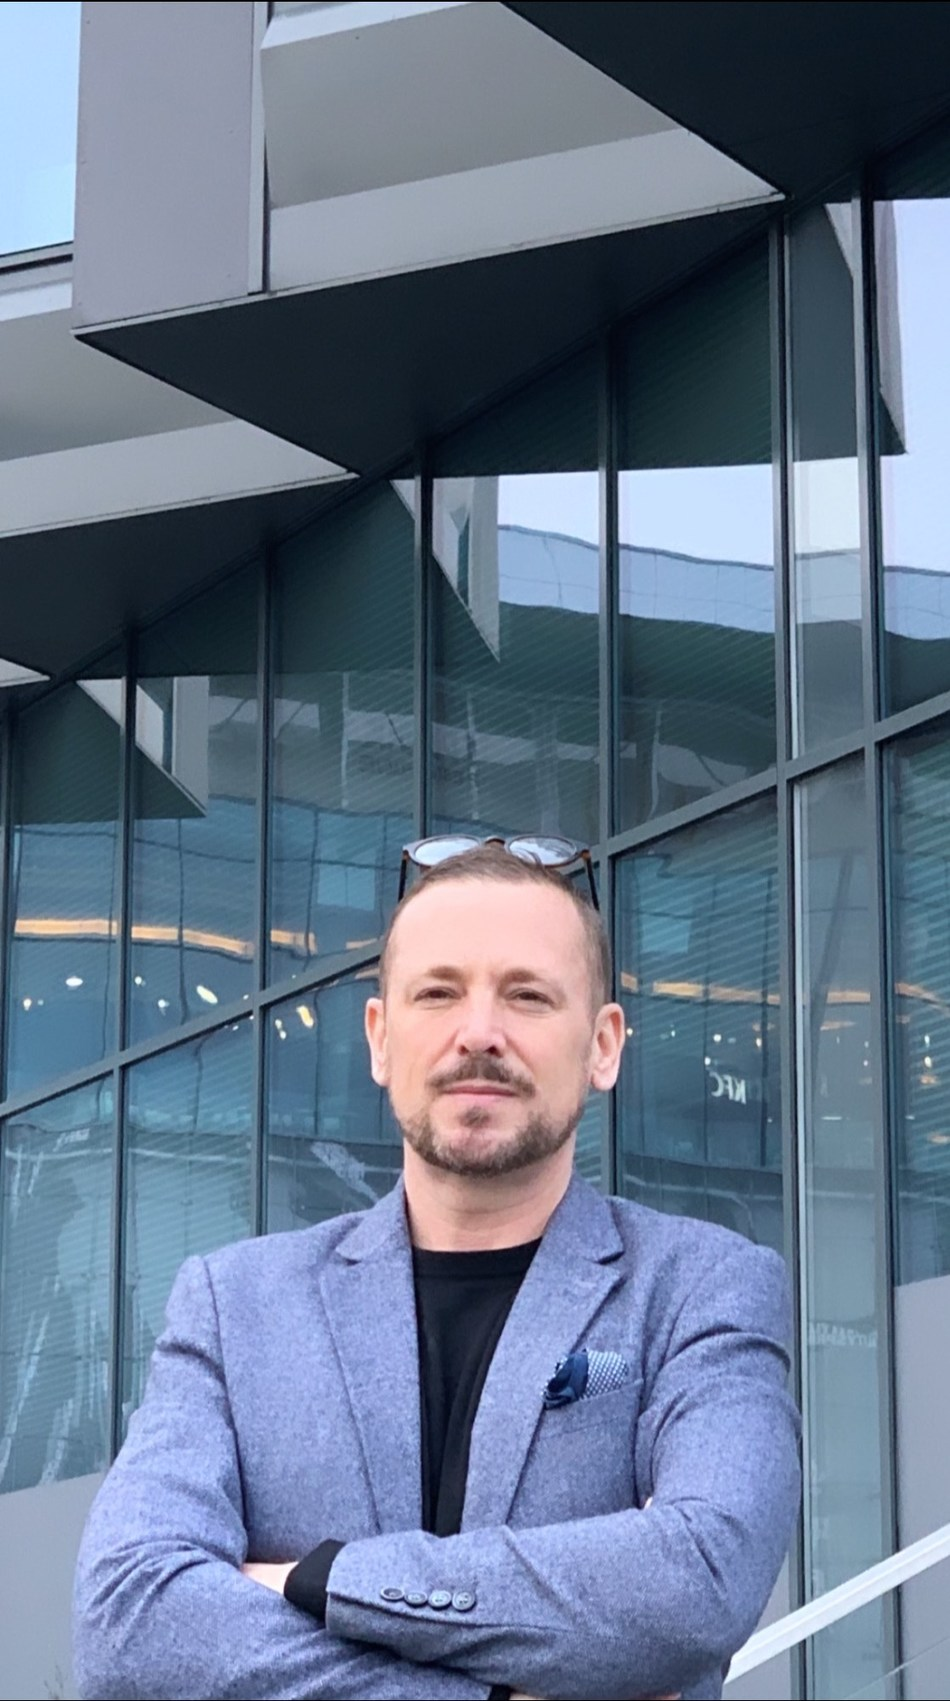 Graham Fell, FlexDev's Executive Vice President outside their Nearshore Delivery Center in Poznan (PRNewsfoto/FlexDev Public Relations)